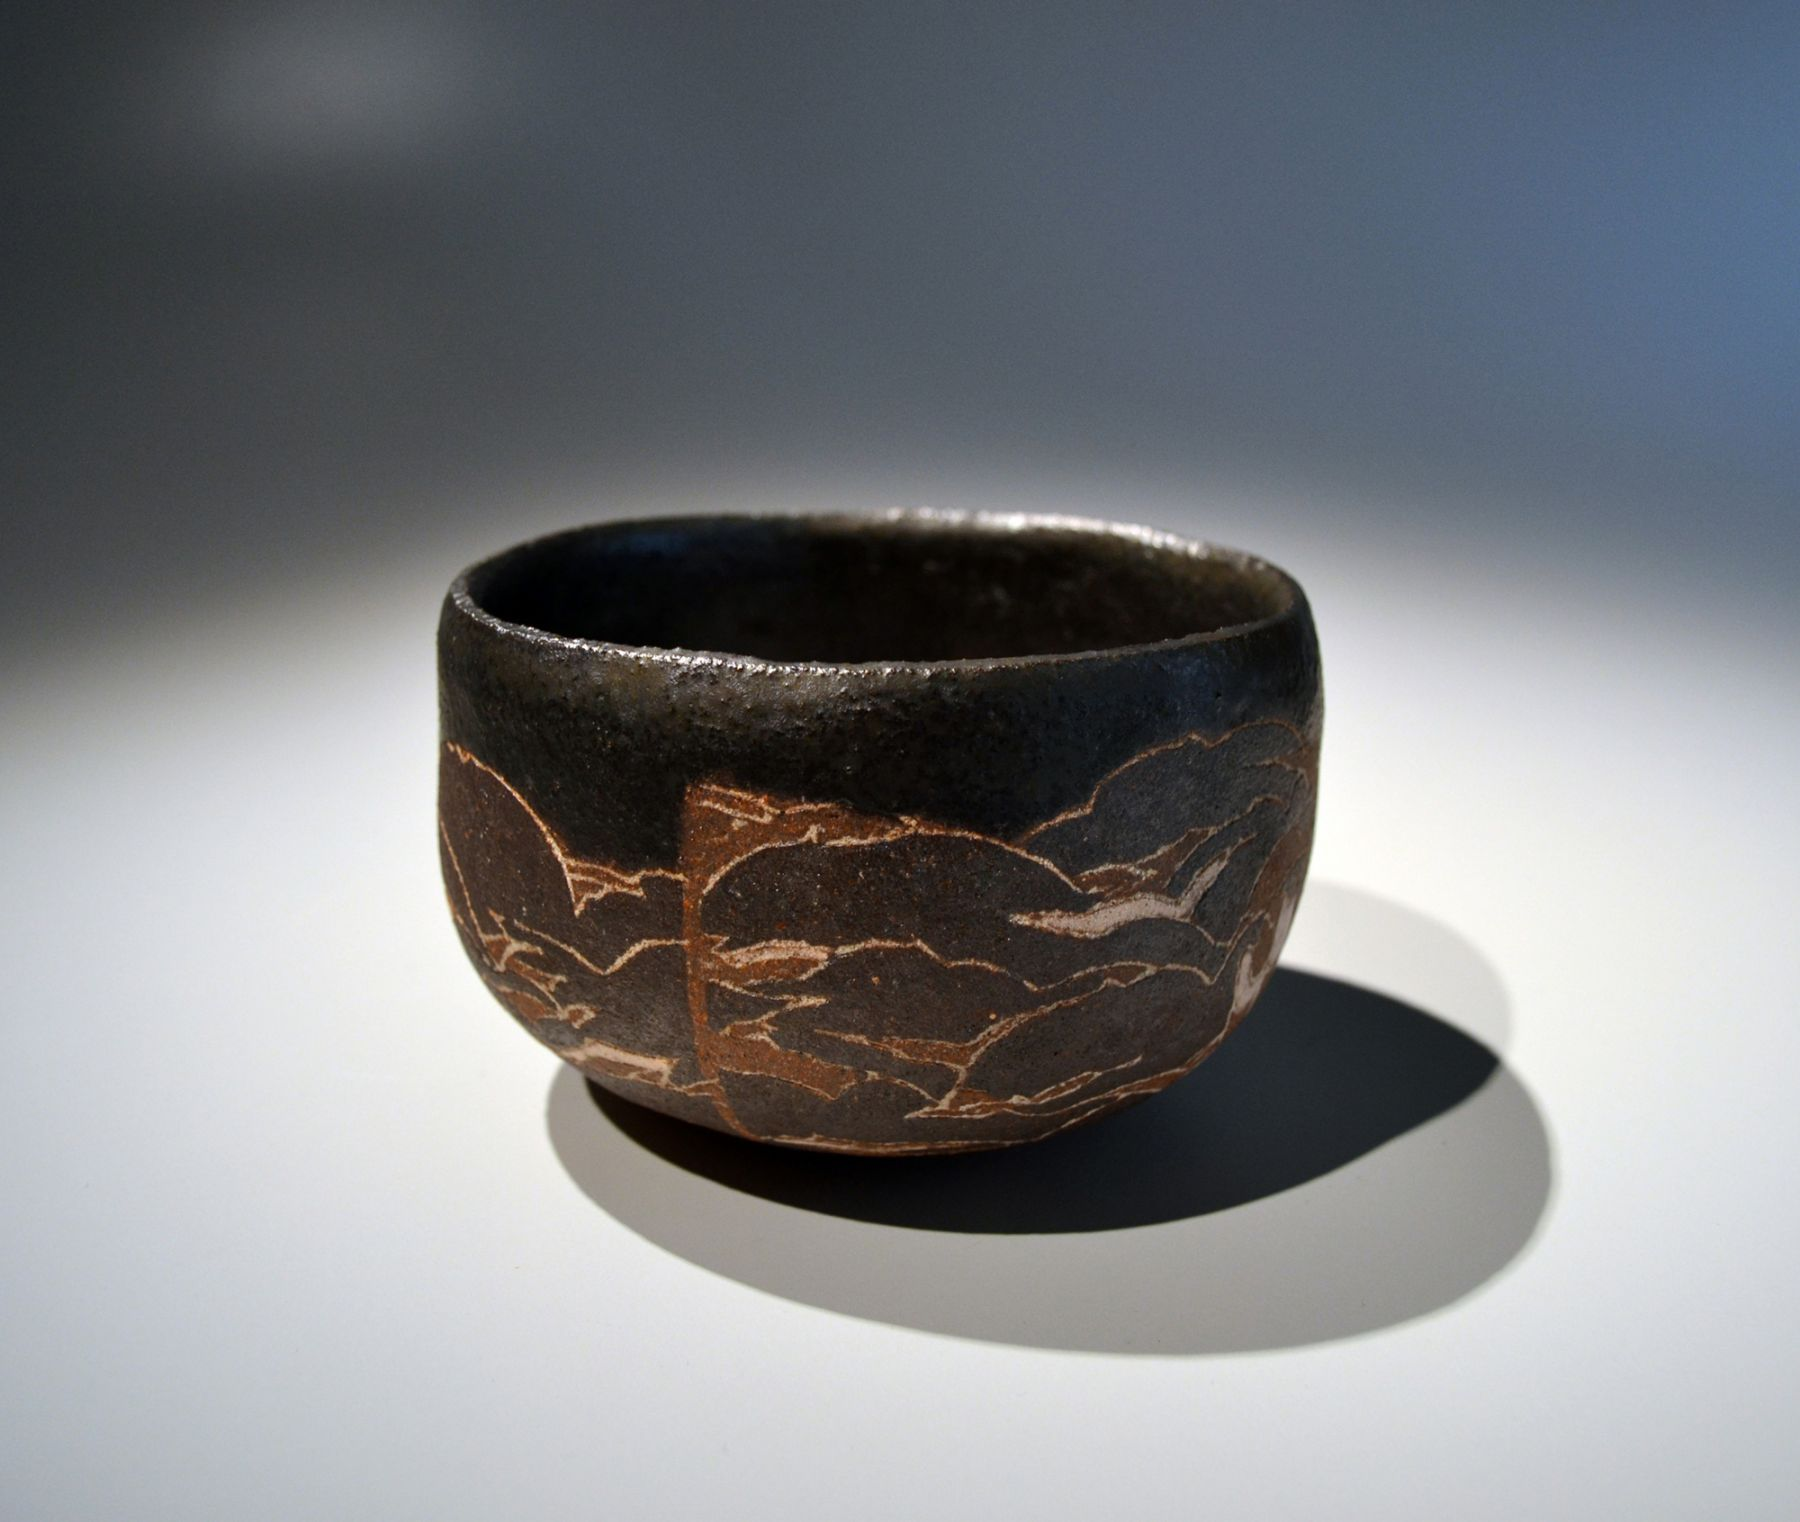 Wada Morihiro (1944-2008), Teabowl with Cloud-and-Flower pattern